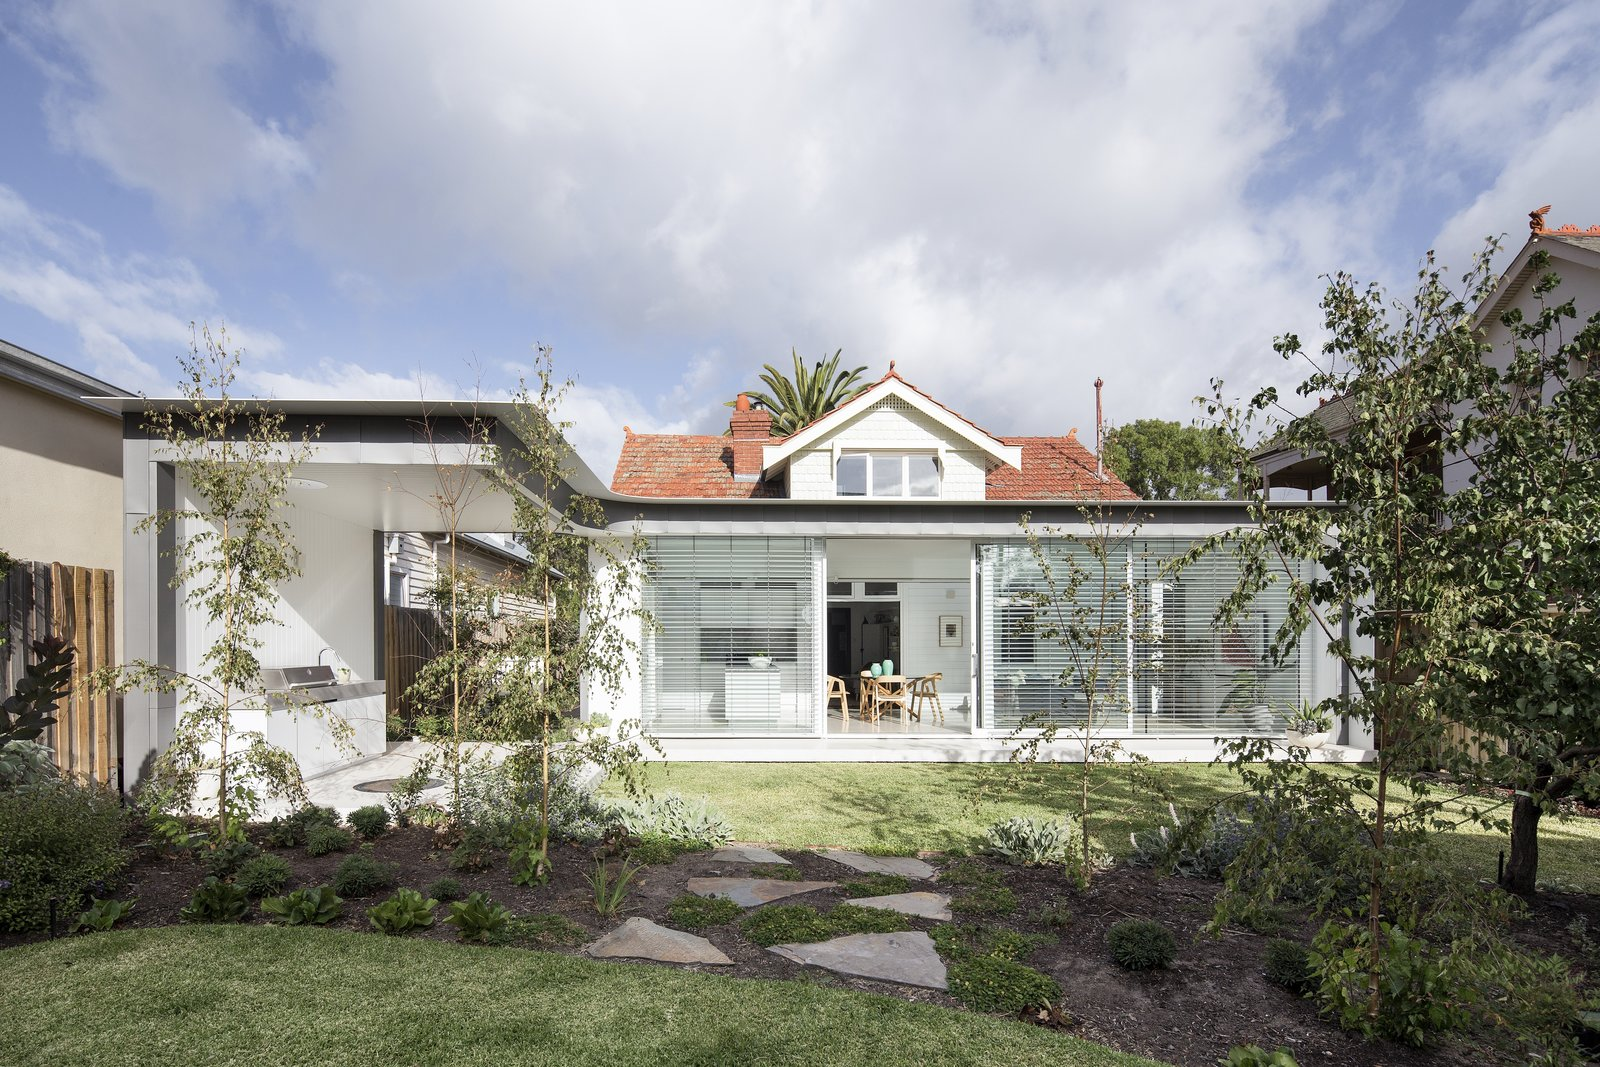 Exterior, Brick, Shingles, Gable, House, Glass, and Flat  Best Exterior Flat Gable Photos from A Renovated Melbourne Bungalow Keeps its Clapboard Character